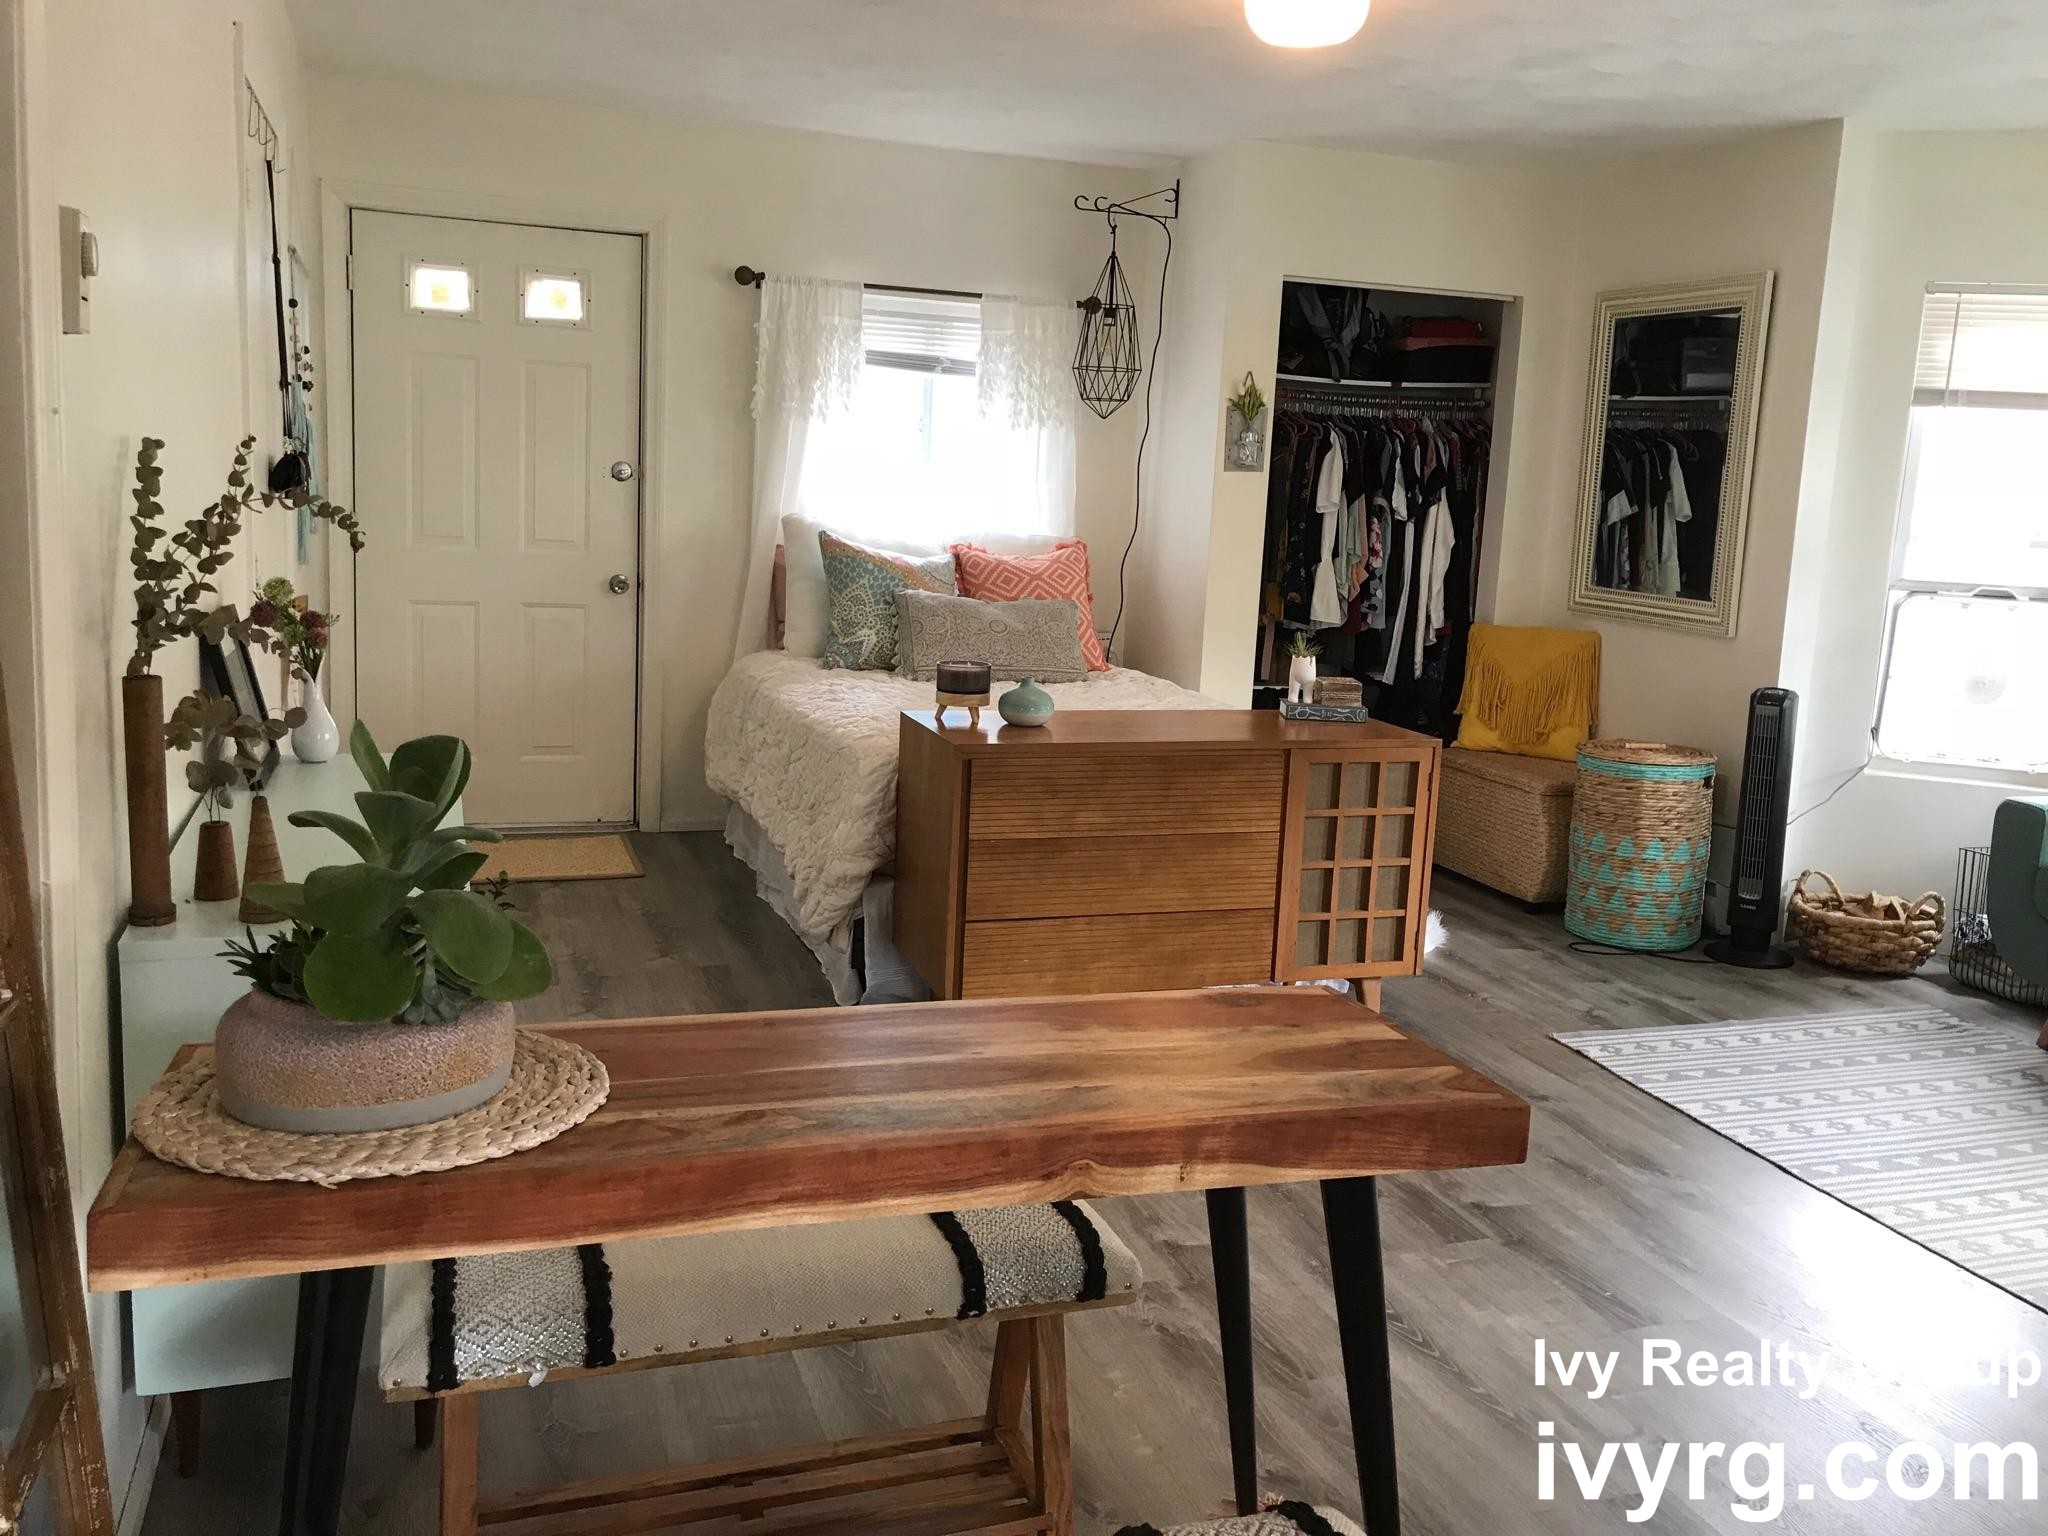 Studio, 1 Bath apartment in Somerville, Winter Hill for $1,500